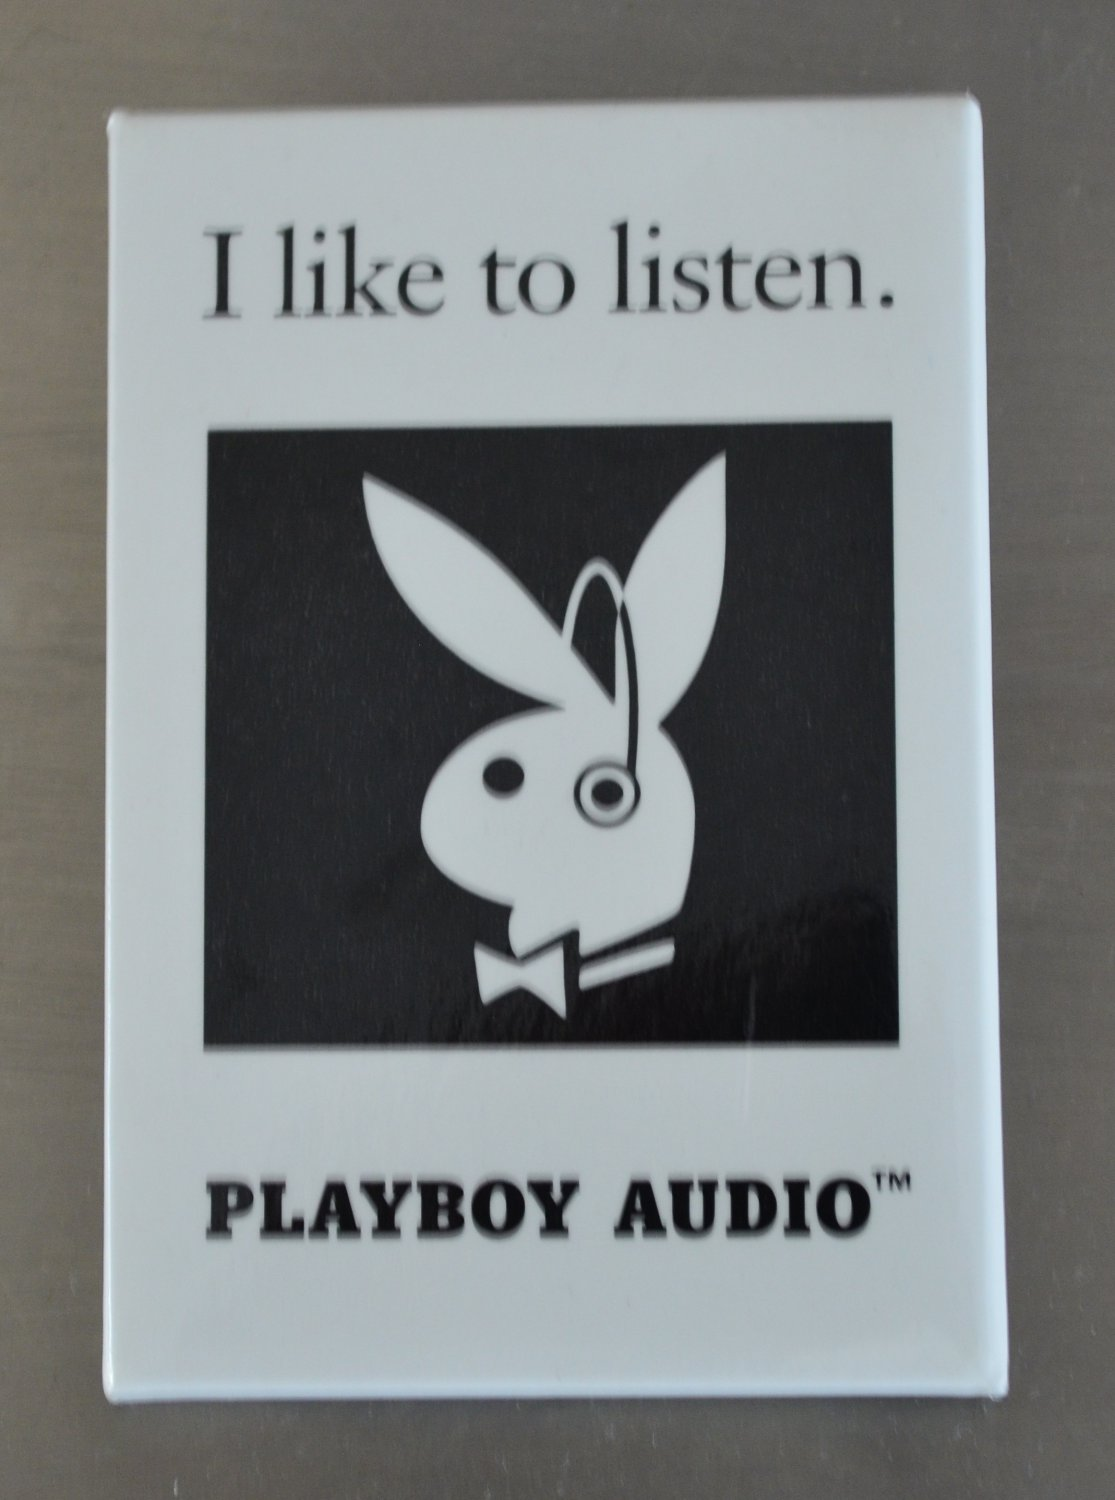 Playboy Audio Button Pin I Like To Listen Vintage